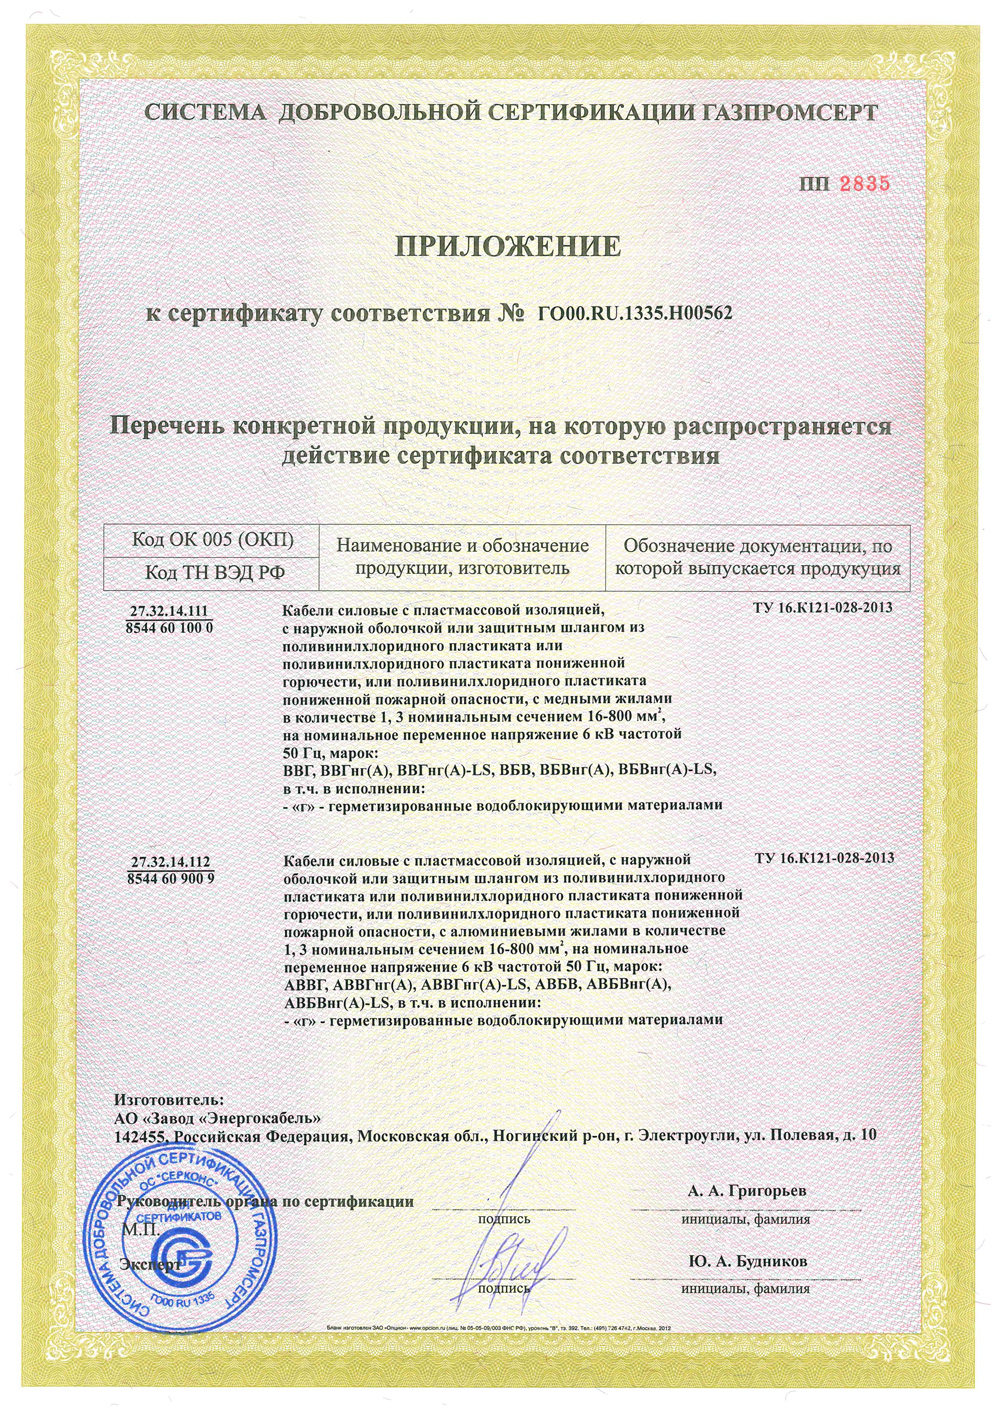 The appendix to the certificate of Conformity № ГО00.RU.1335.Н00562.